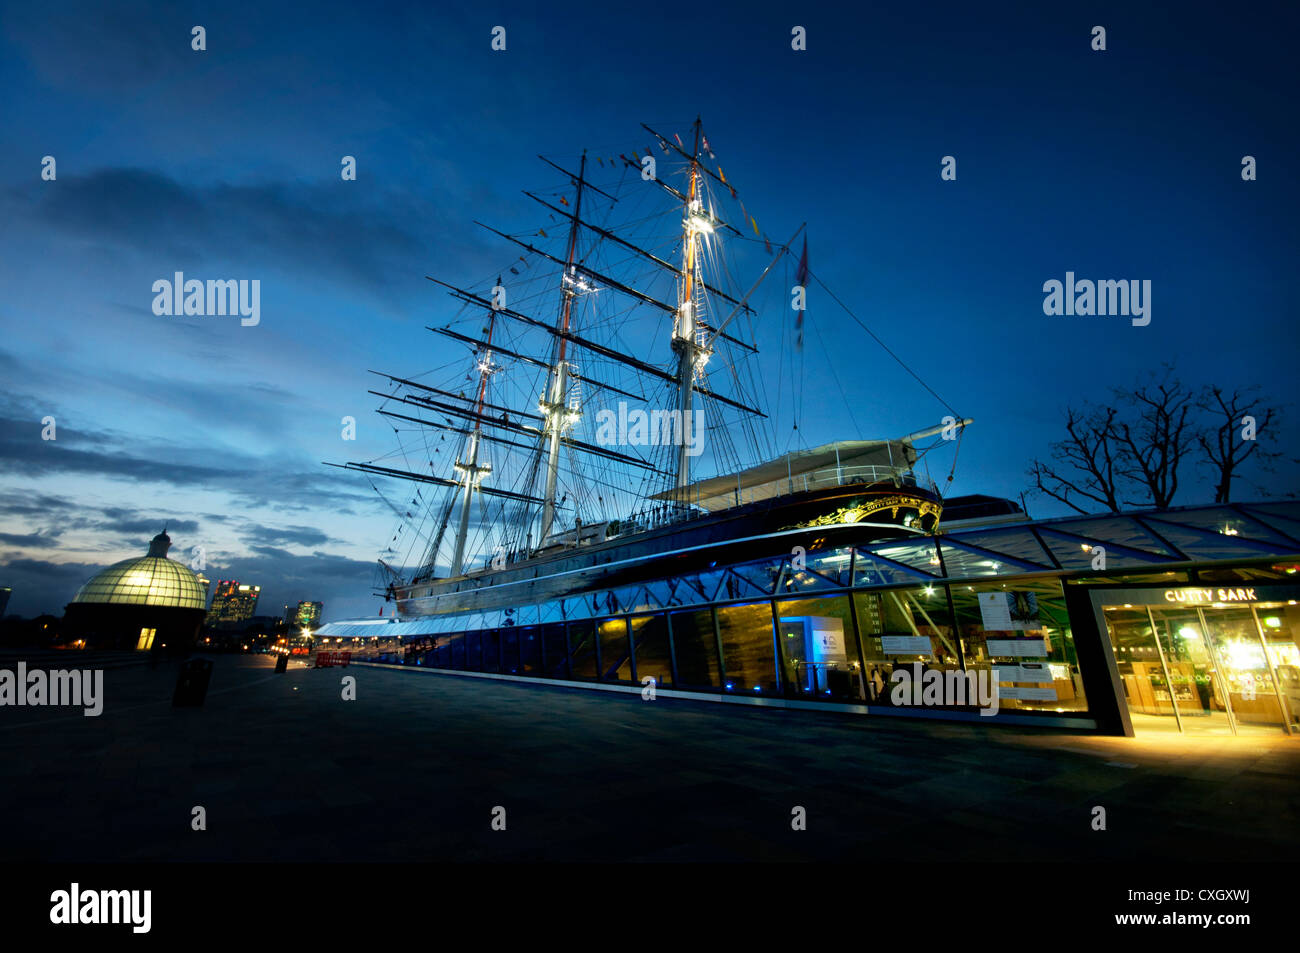 Newly renovated Cutty Sark tea clipper ship at Greenwich London UK - Stock Image